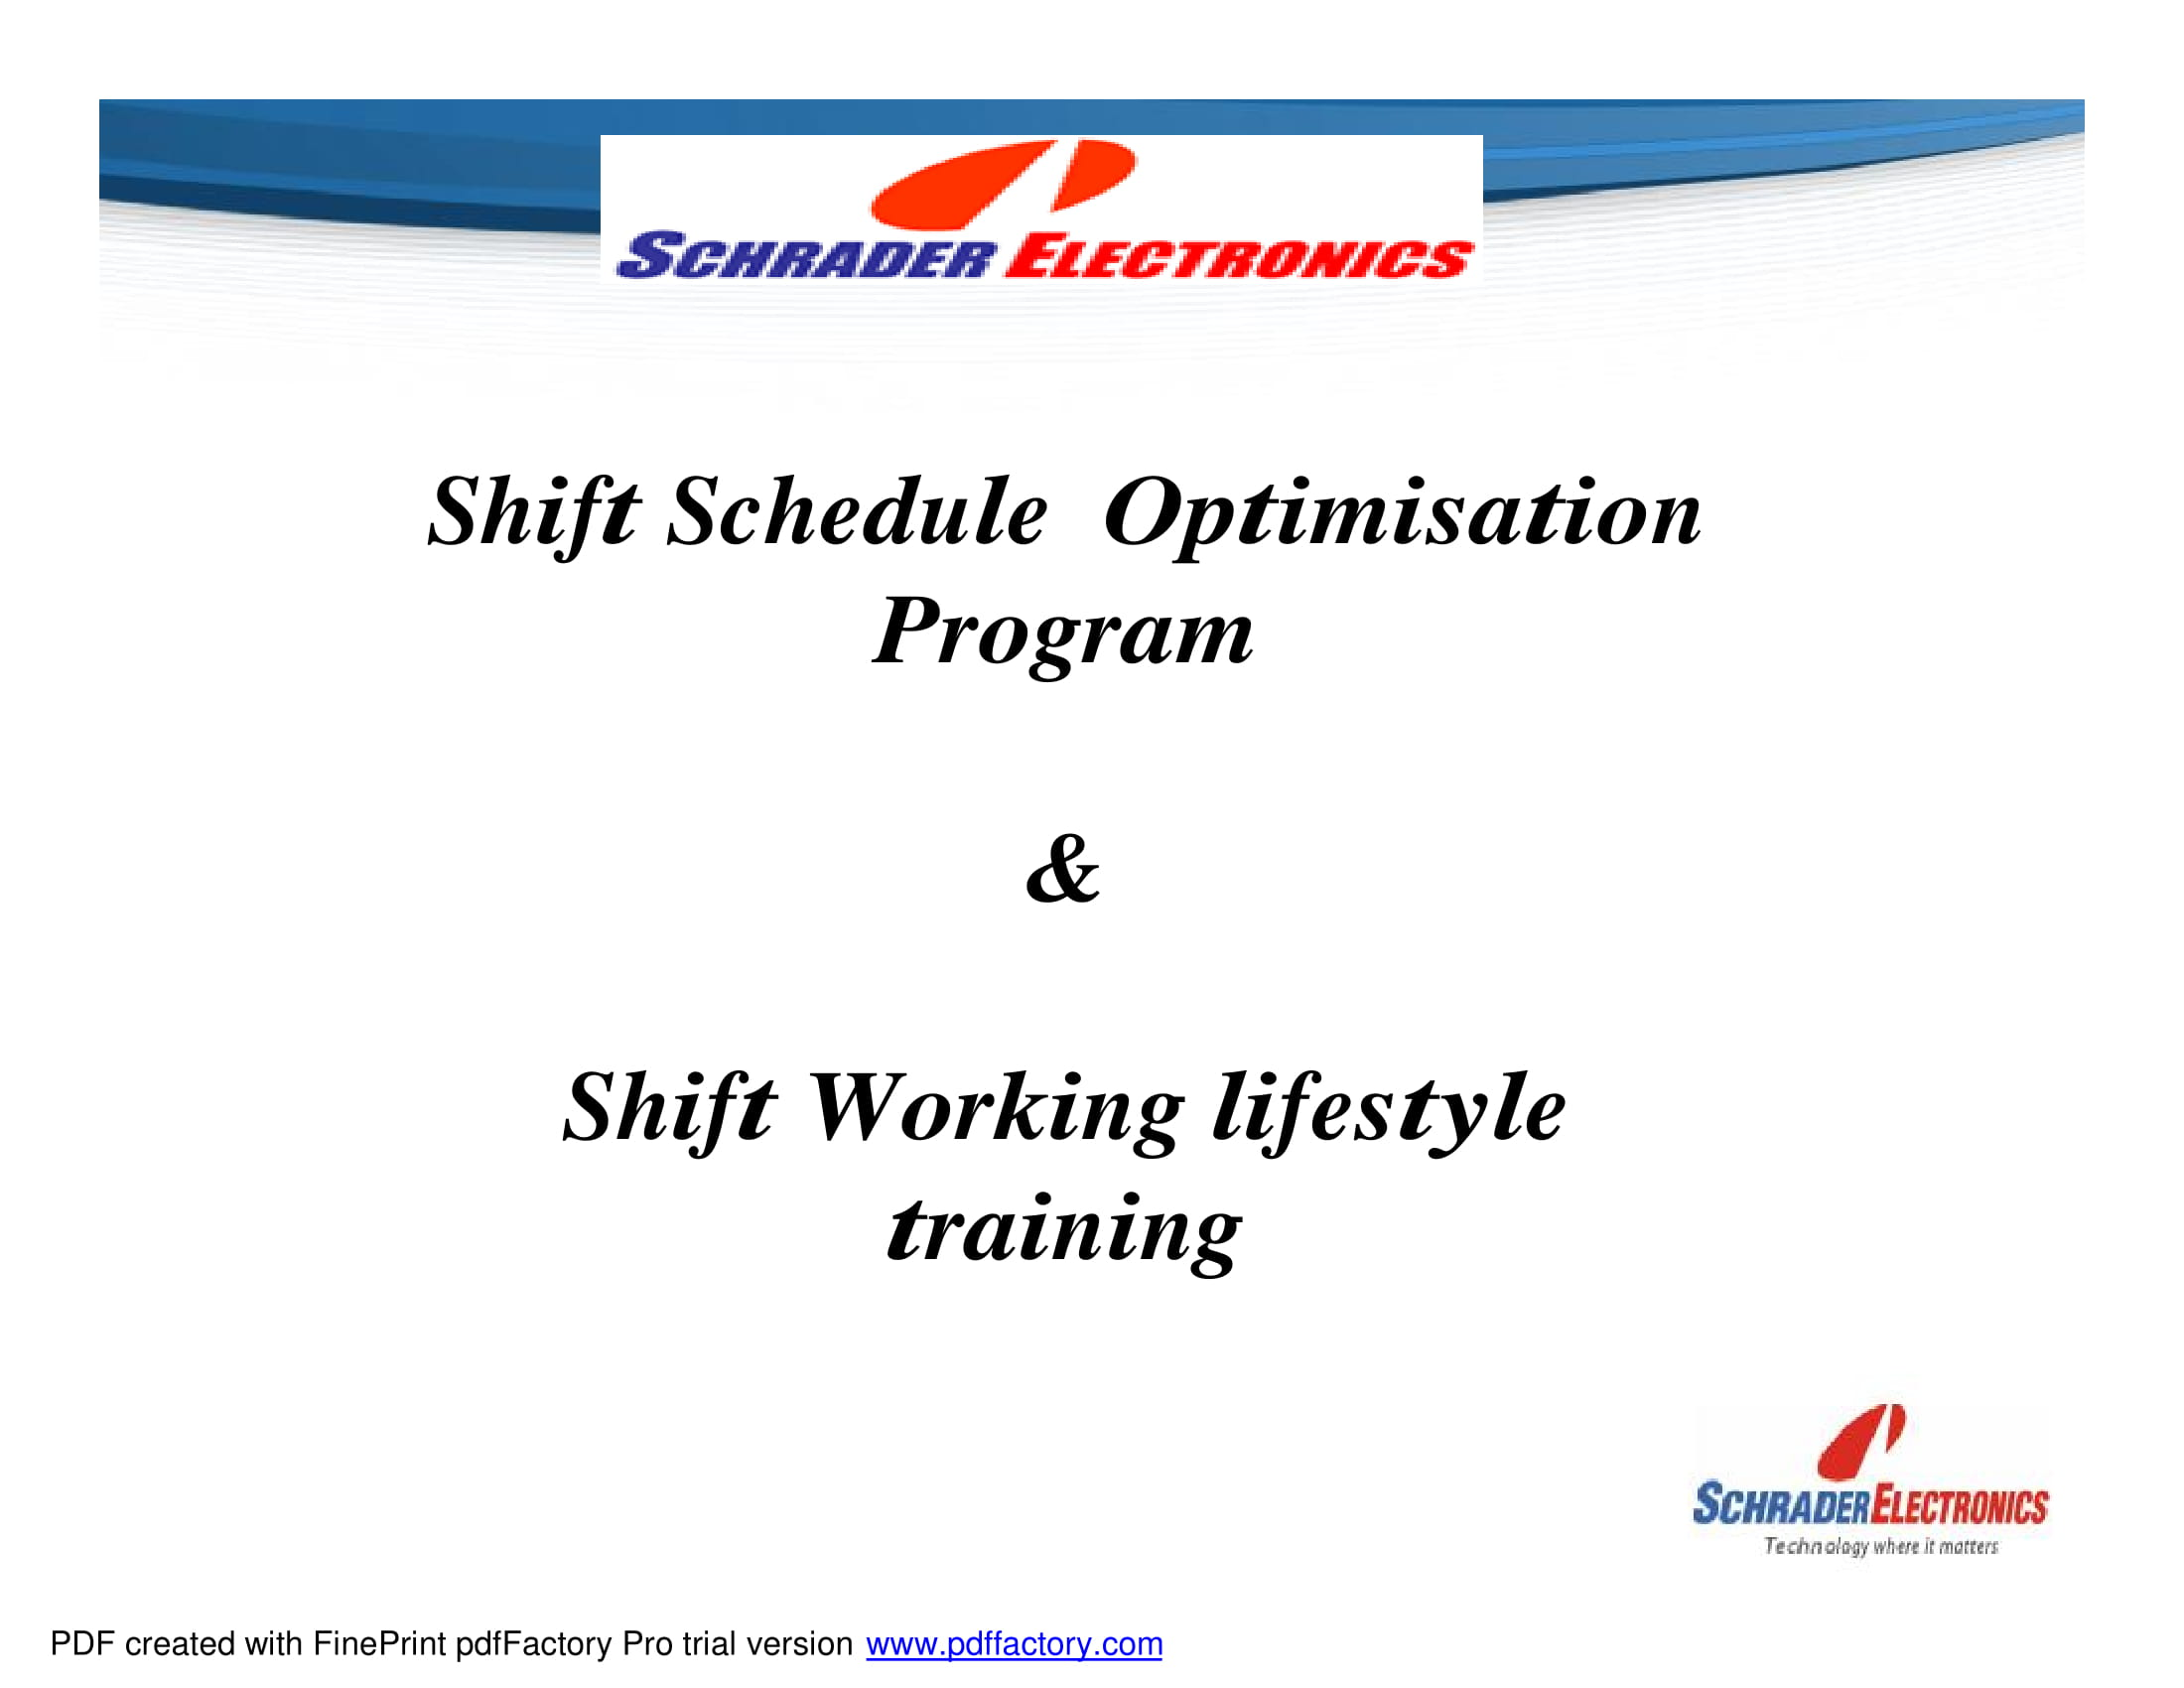 shift work life style training 01